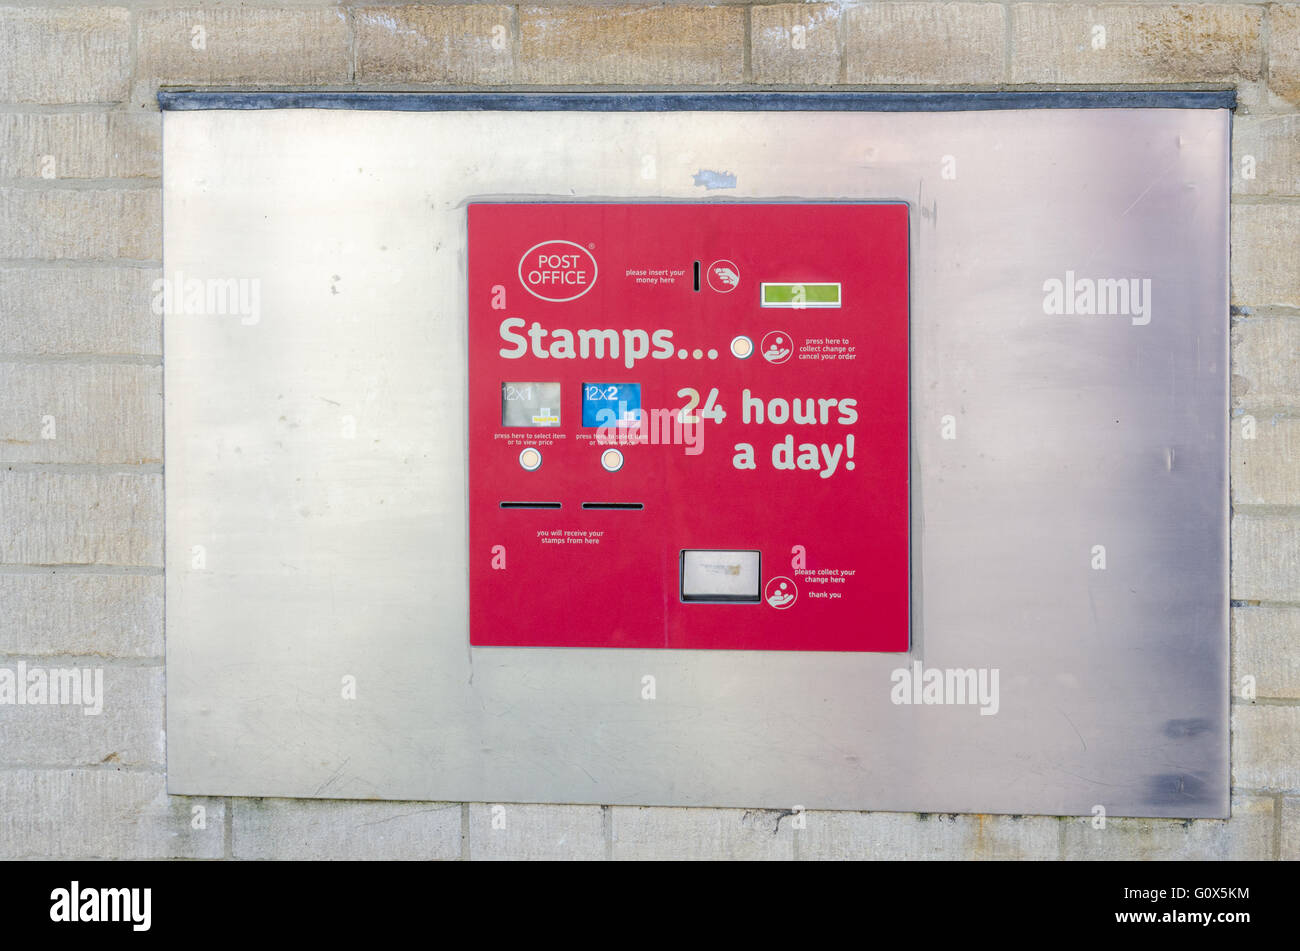 Royal Mail Stamp Vending Machine Built Into The Wall Outside